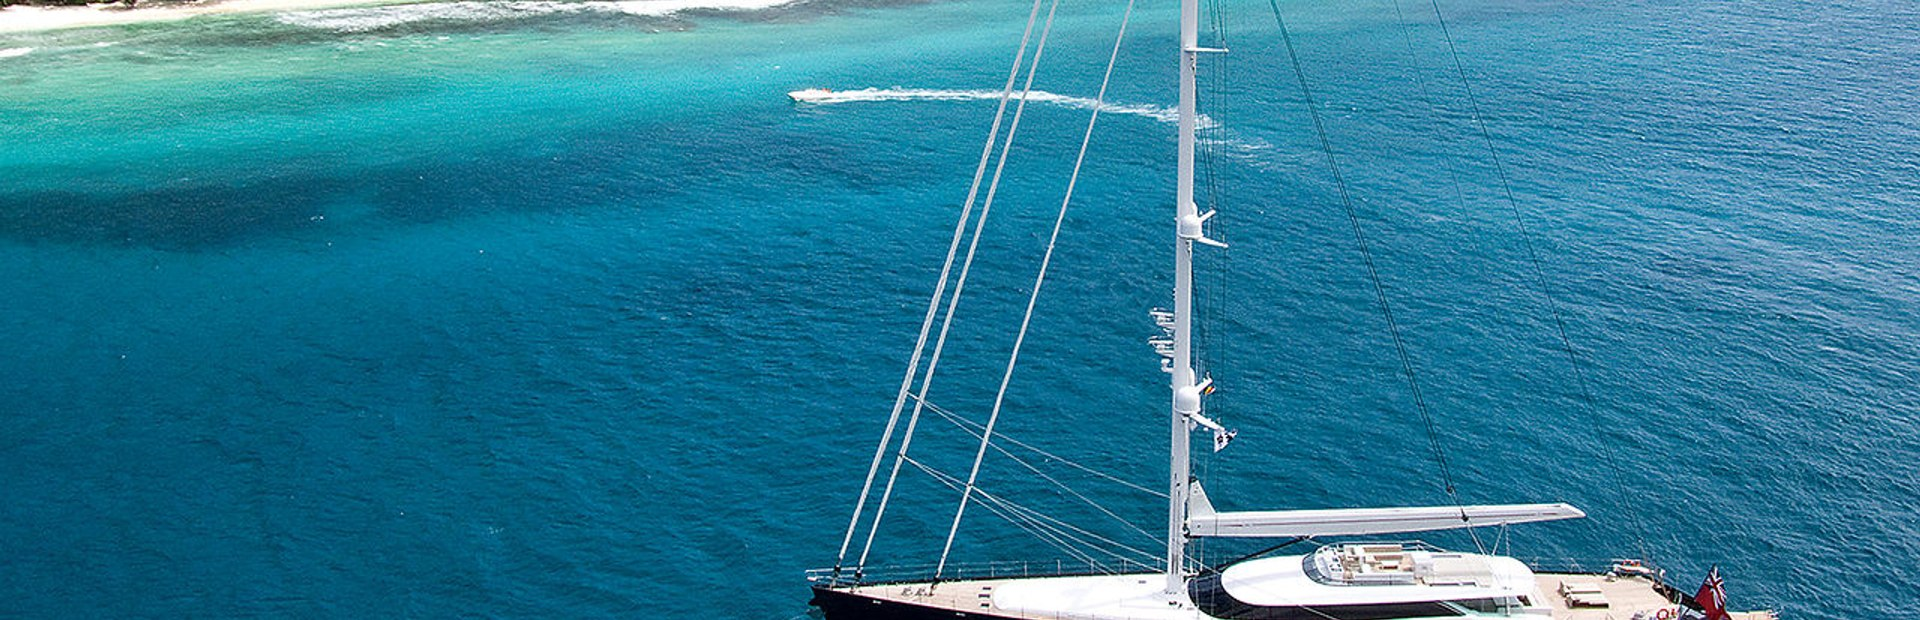 An Allloy Yachts charter superyacht at anchore off tropical island